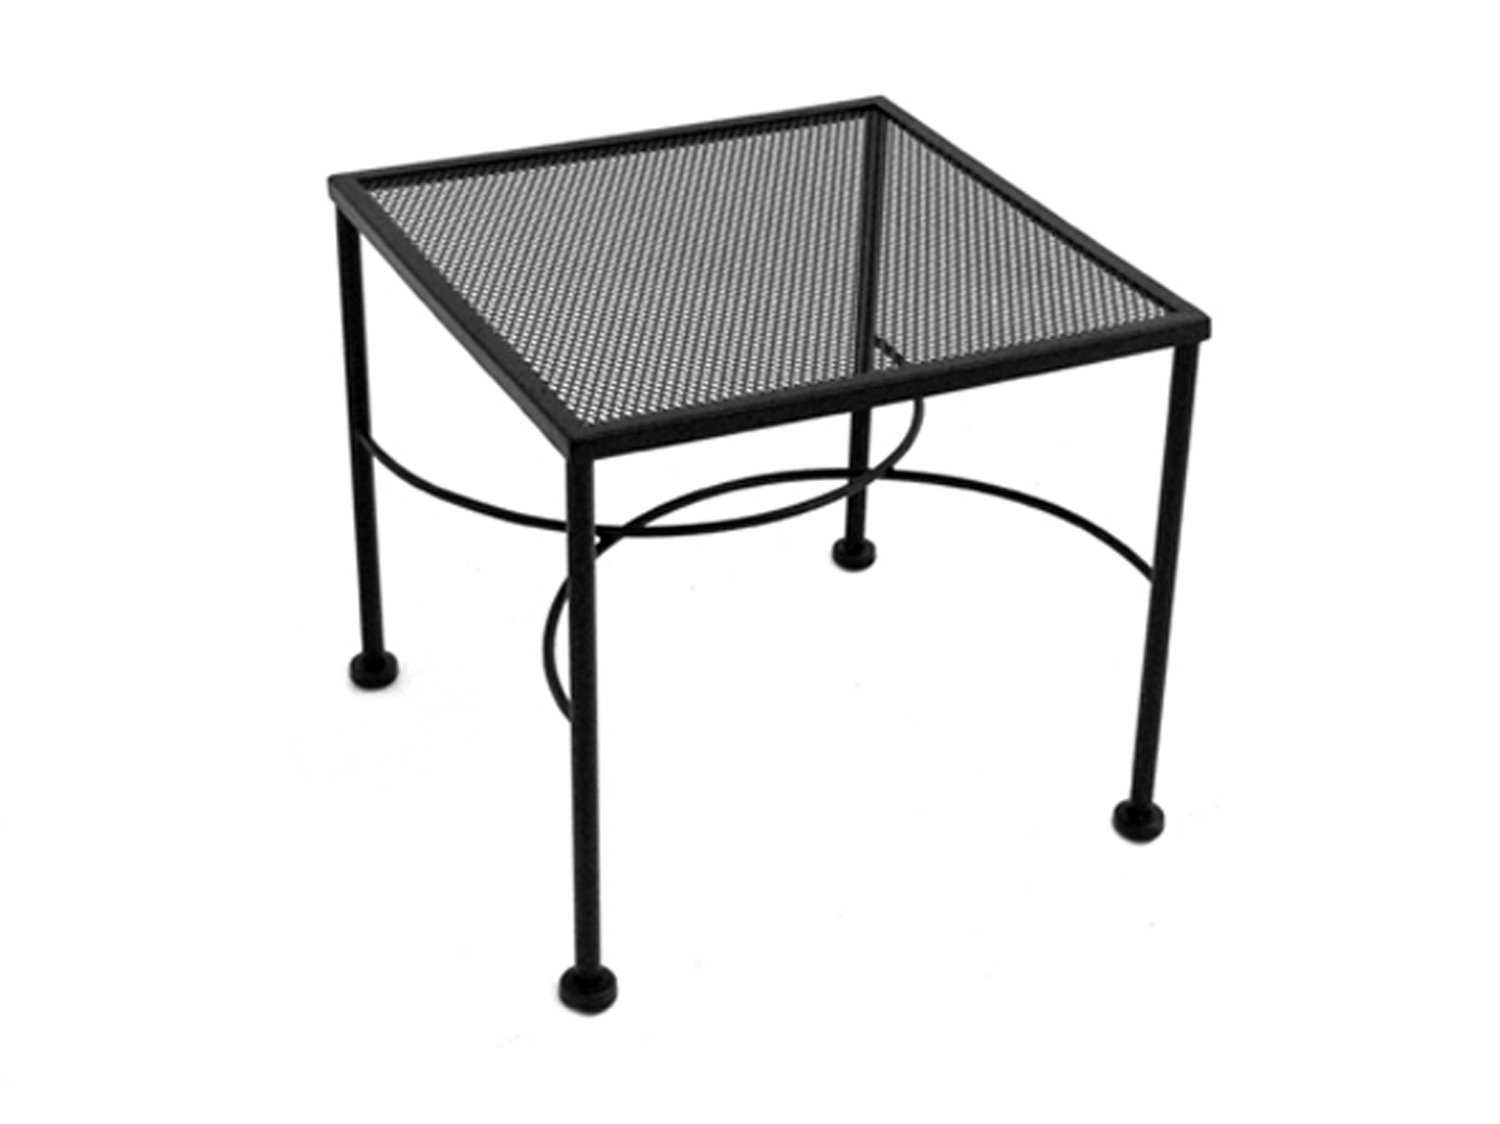 Meadowcraft wrought iron 20 square micro mesh end table for Square wrought iron coffee table